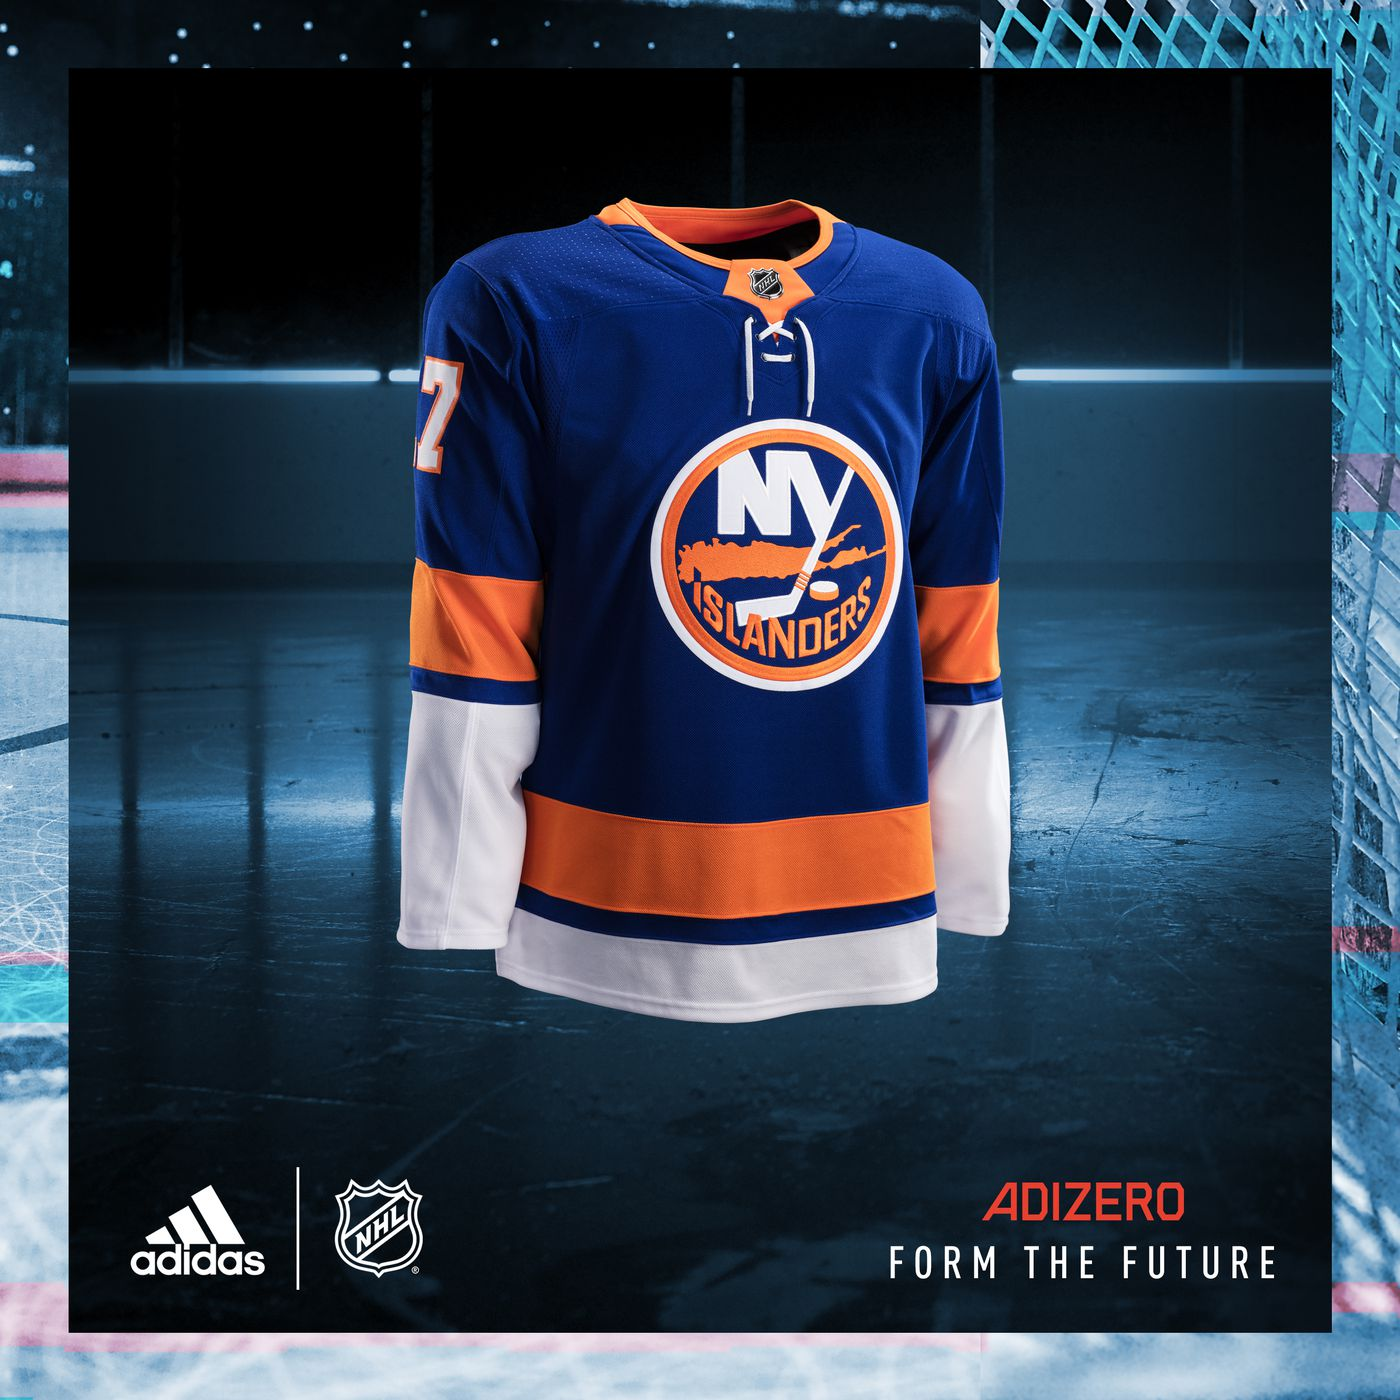 Days of Future Past  New Adidas Islanders jersey looks like the current  one. Thank god. 89480234a